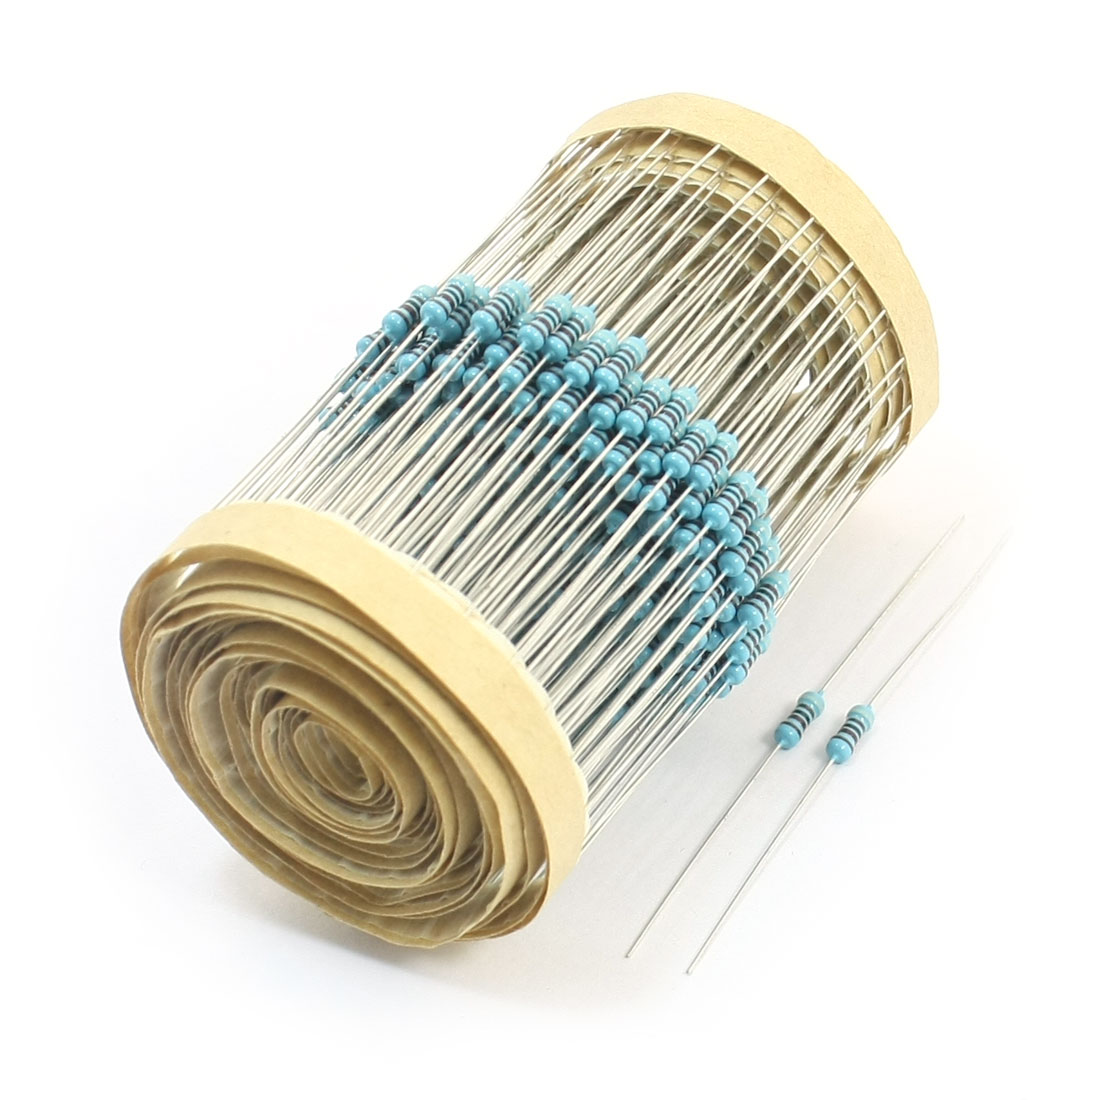 300pcs 6x2mm Body 0.25W 1% 9.1K Ohm Axial Lead Metal Film Resistors